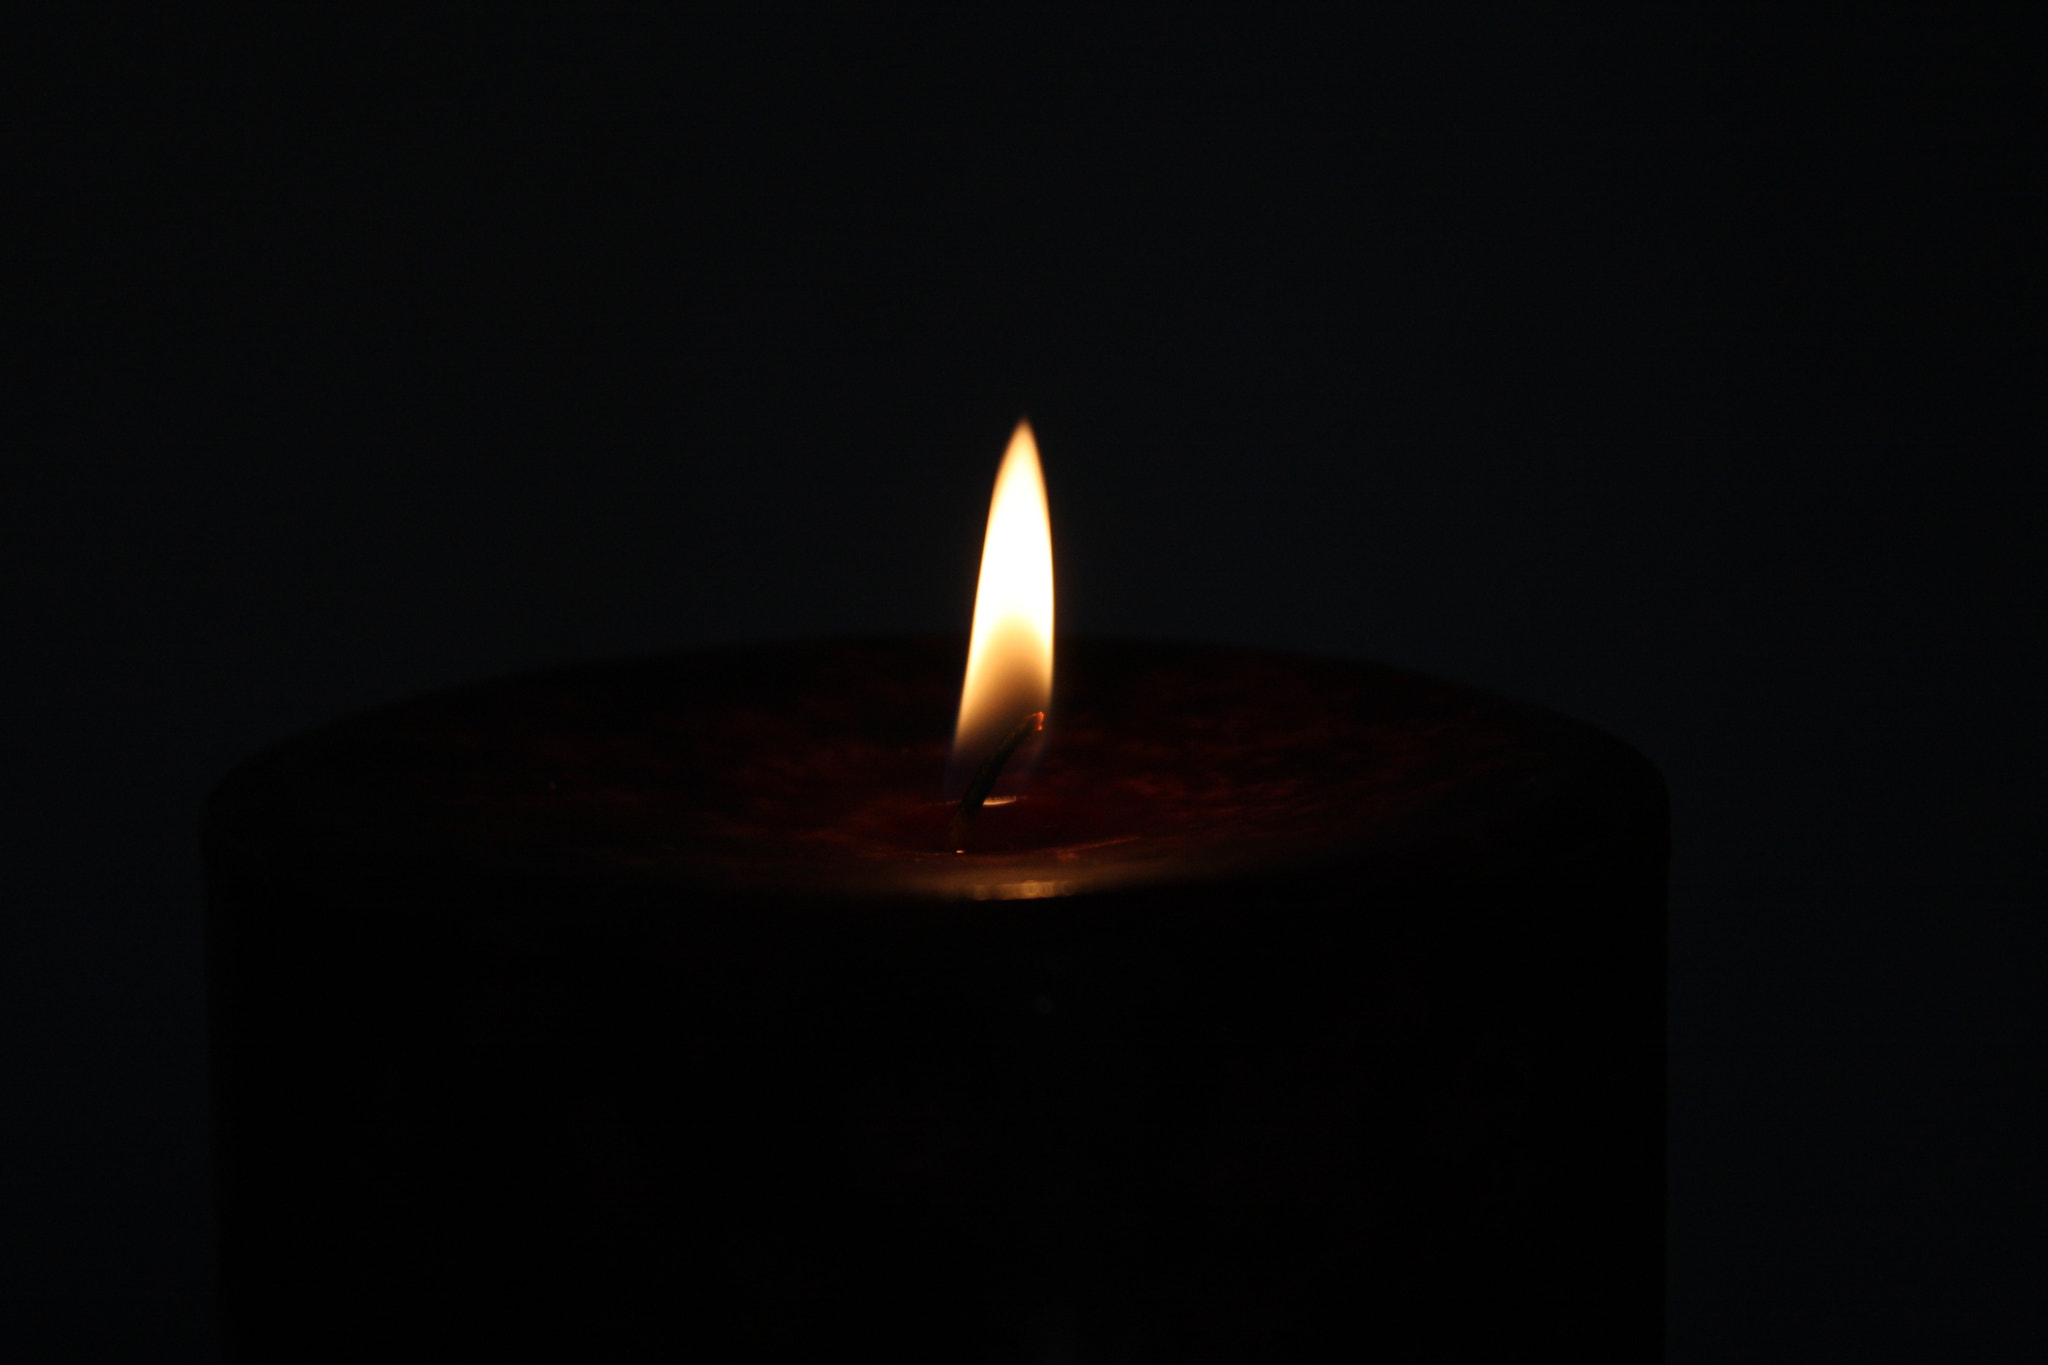 Photograph Candle in the Dark by Rachel Haas on 500px